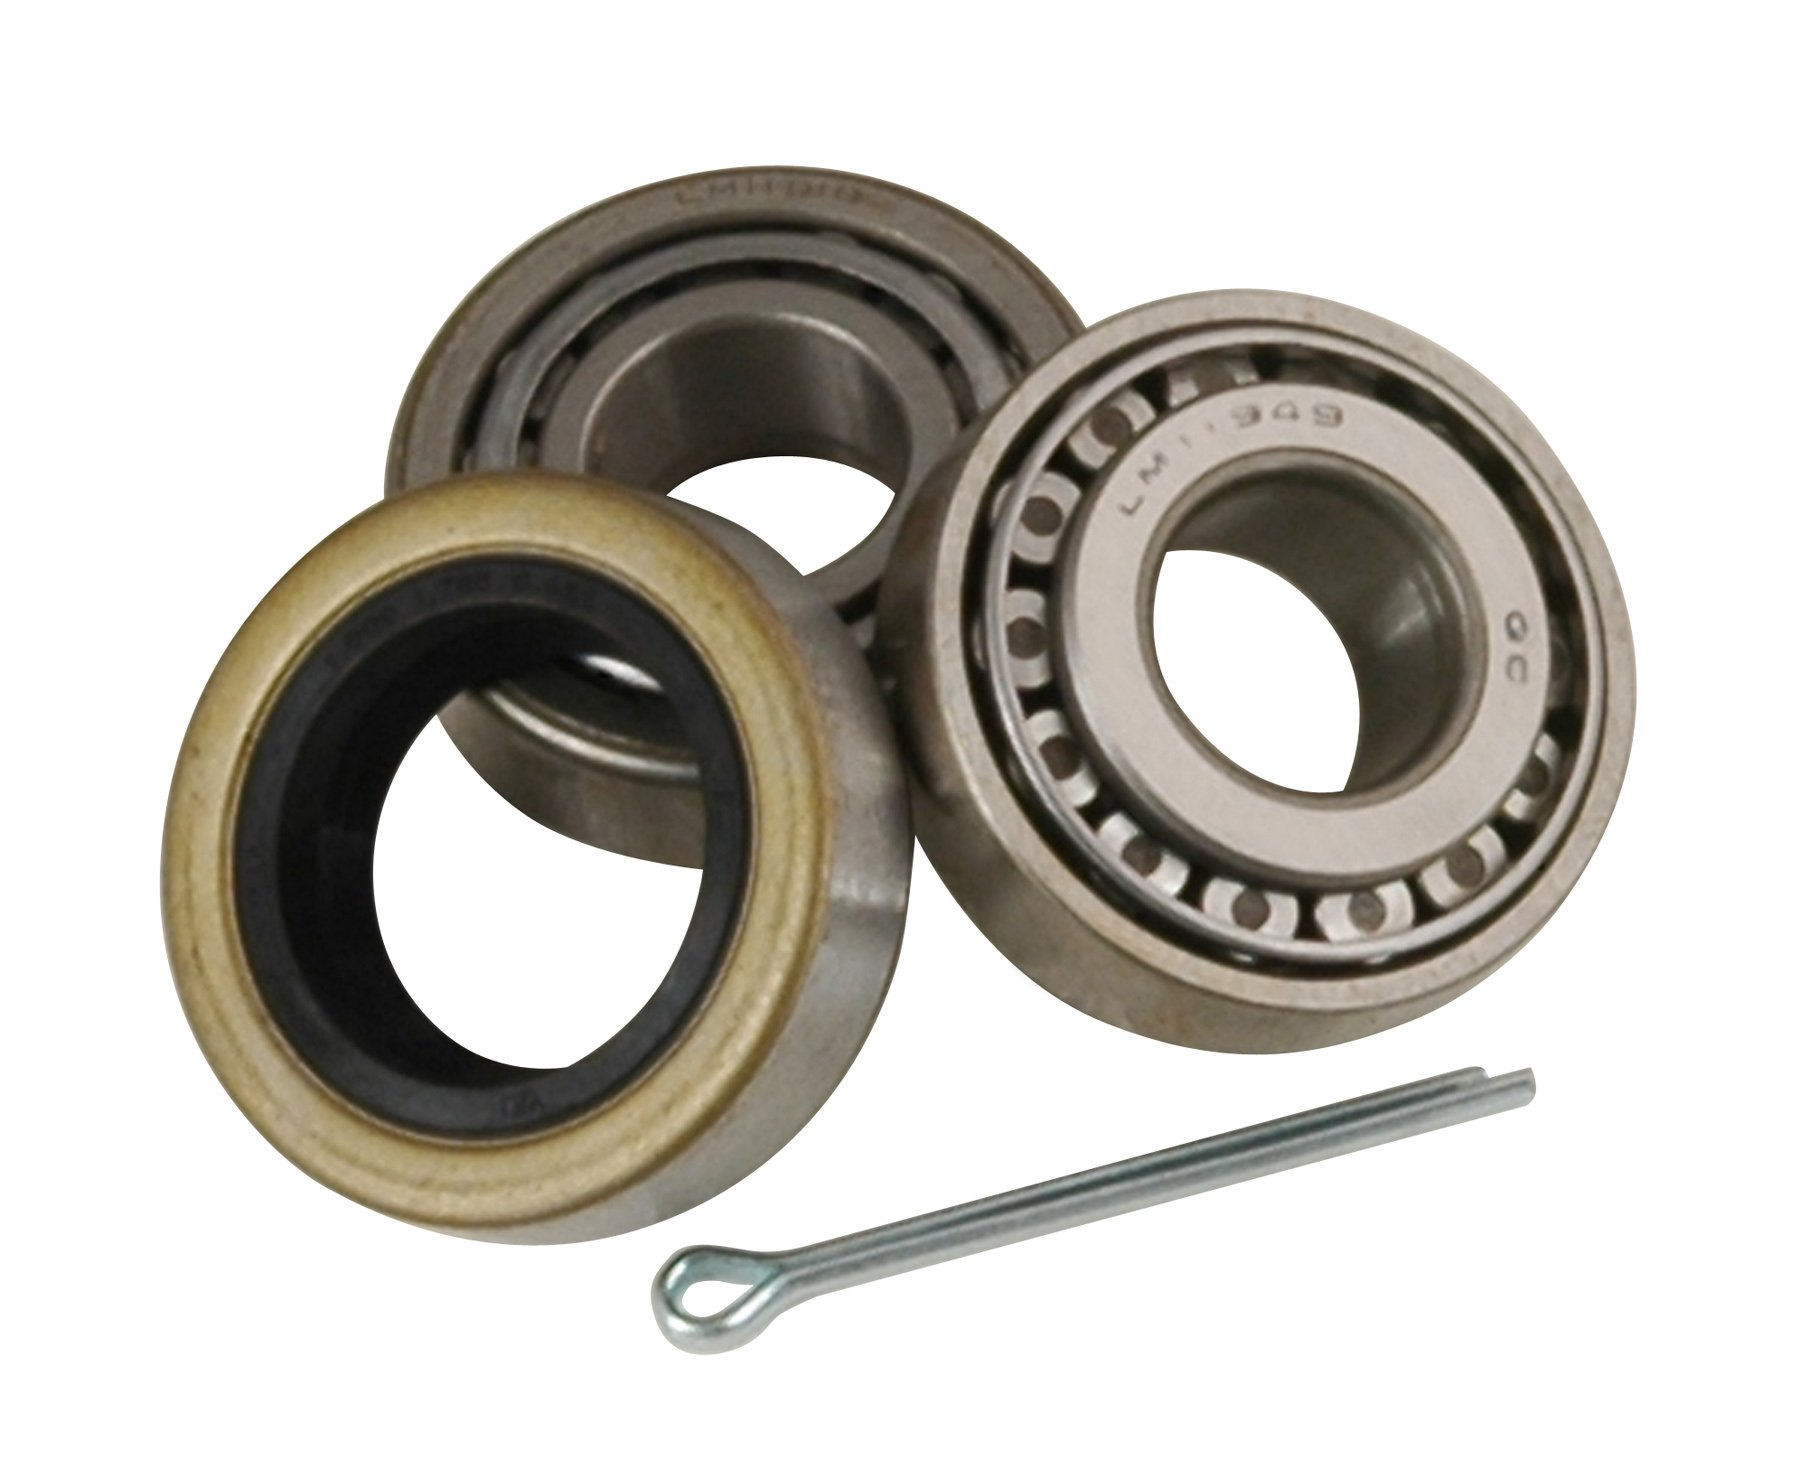 CE Smith Trailer 27113 Bearing Kit (Straight), 1 1/4''- Replacement Parts and Accessories for your Ski Boat, Fishing Boat or Sailboat Trailer